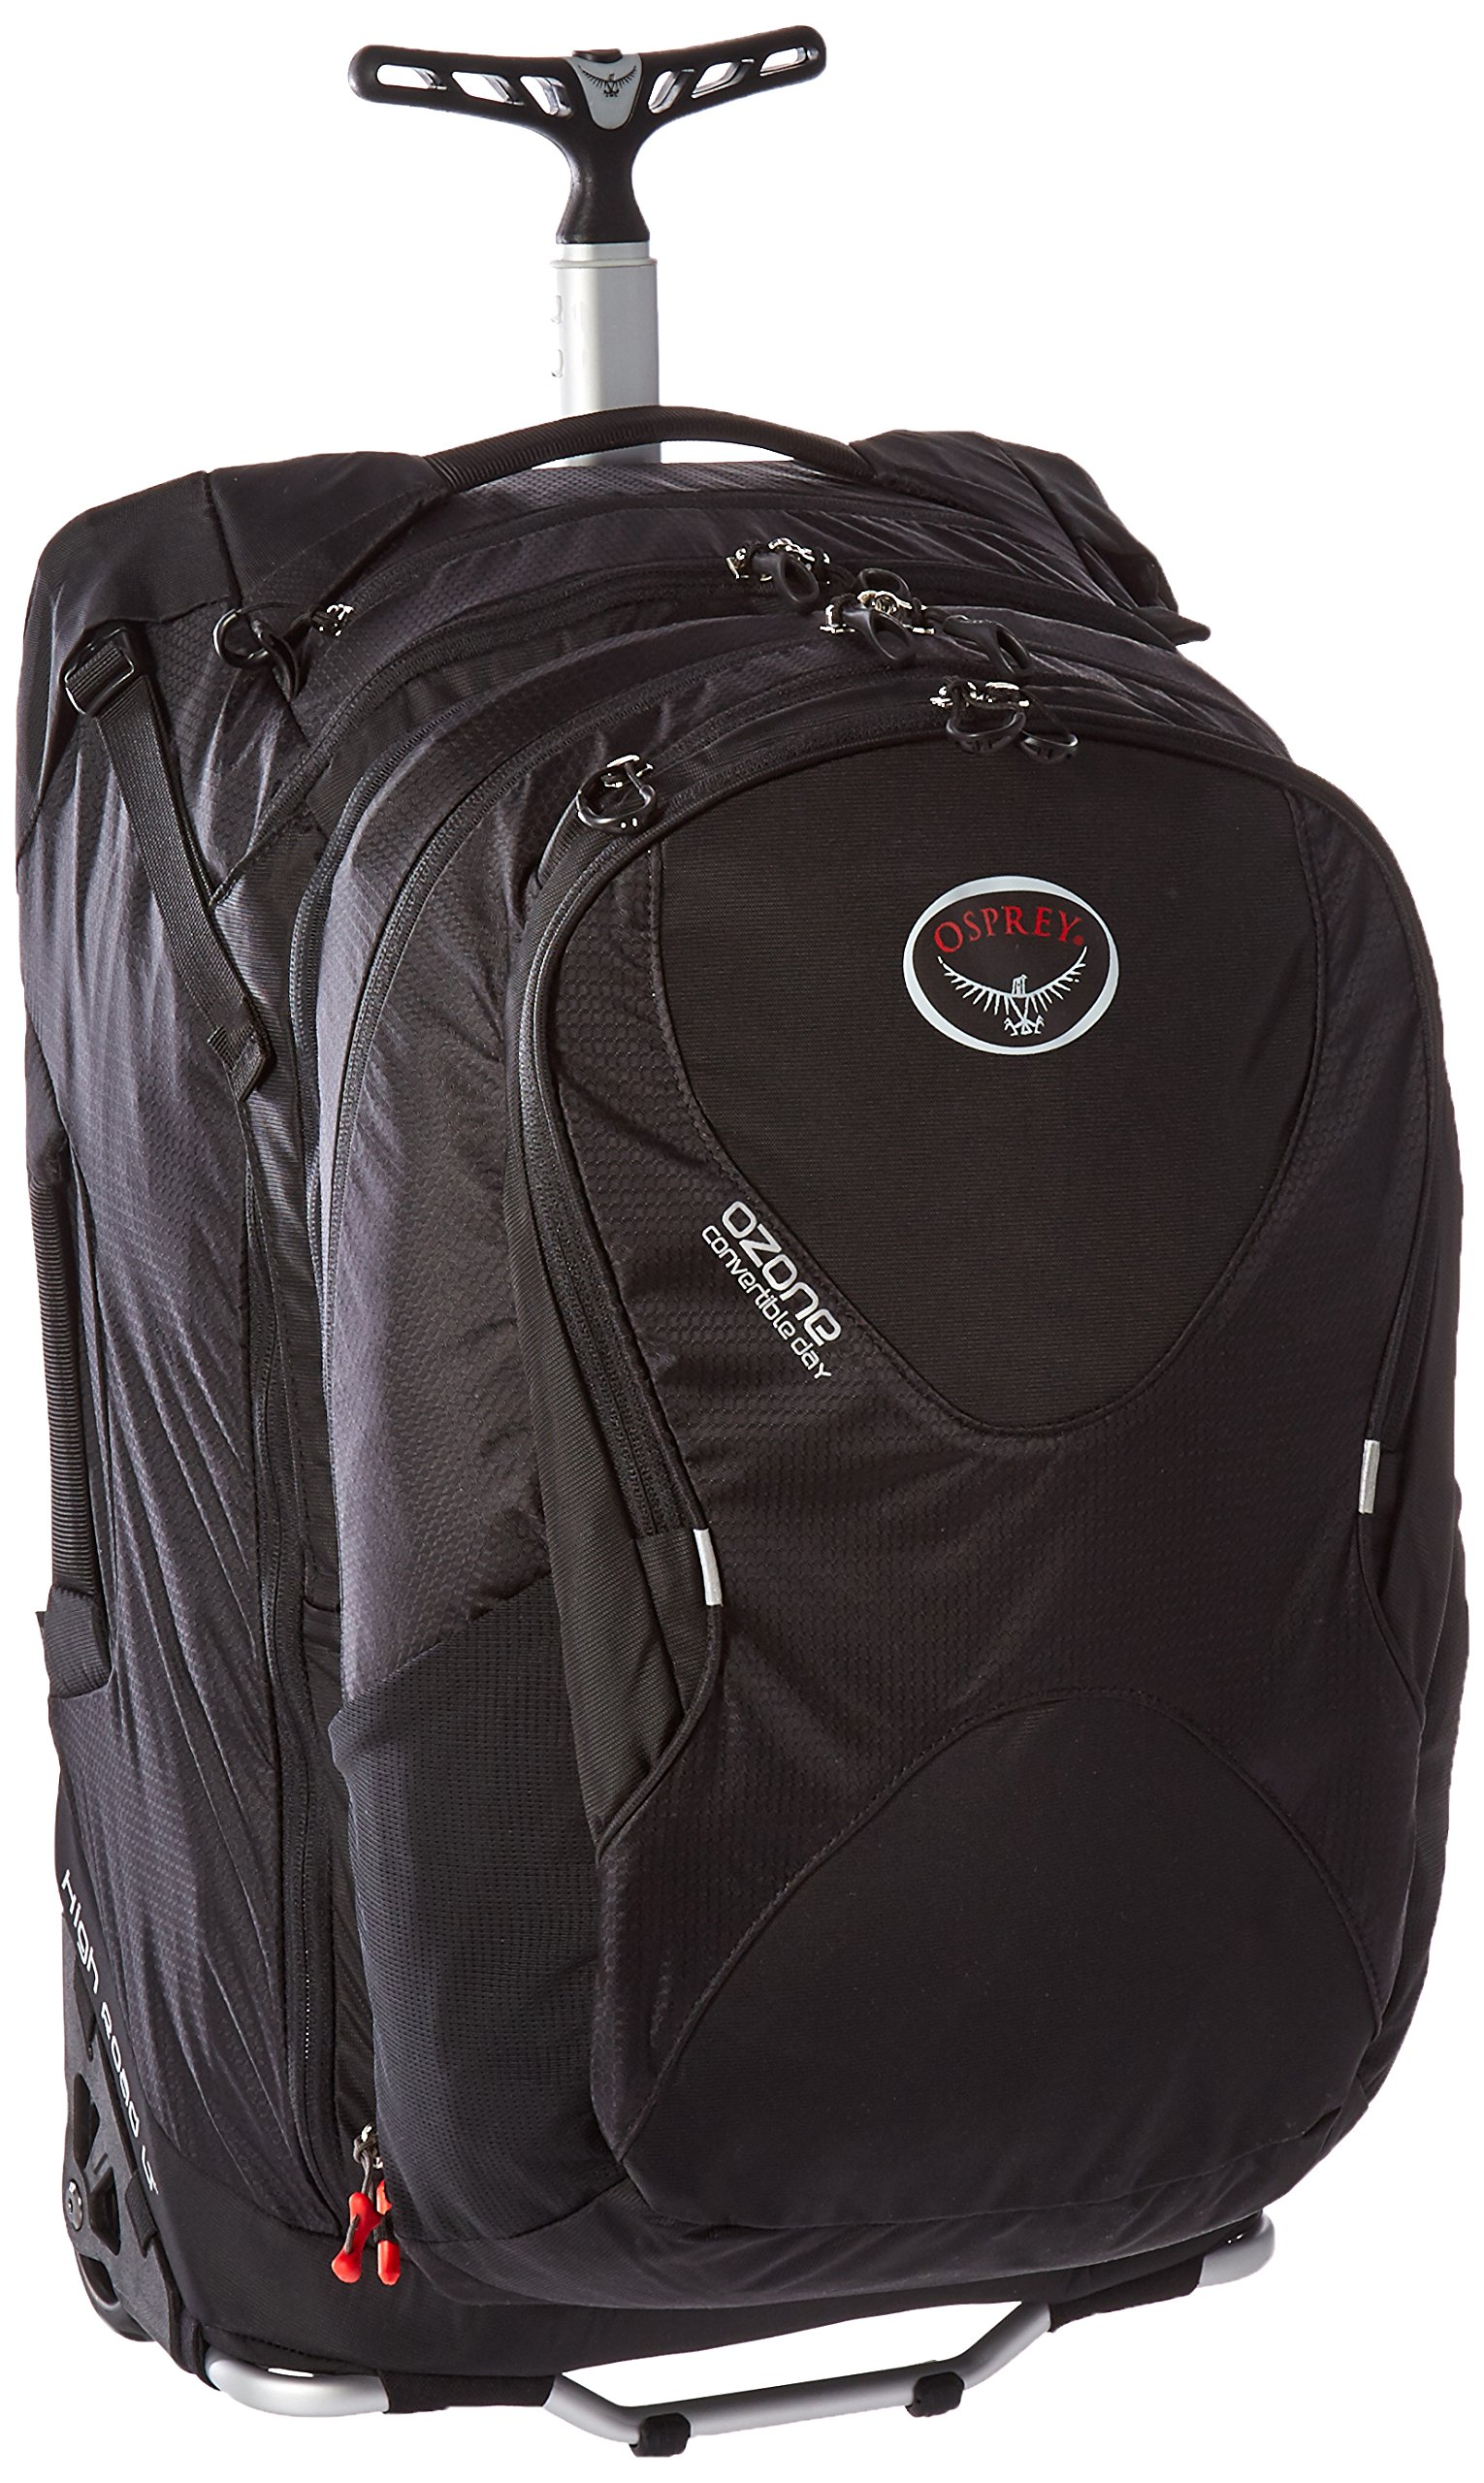 Osprey Ozone Convertible 22''/50L Wheeled Luggage, Black by Osprey